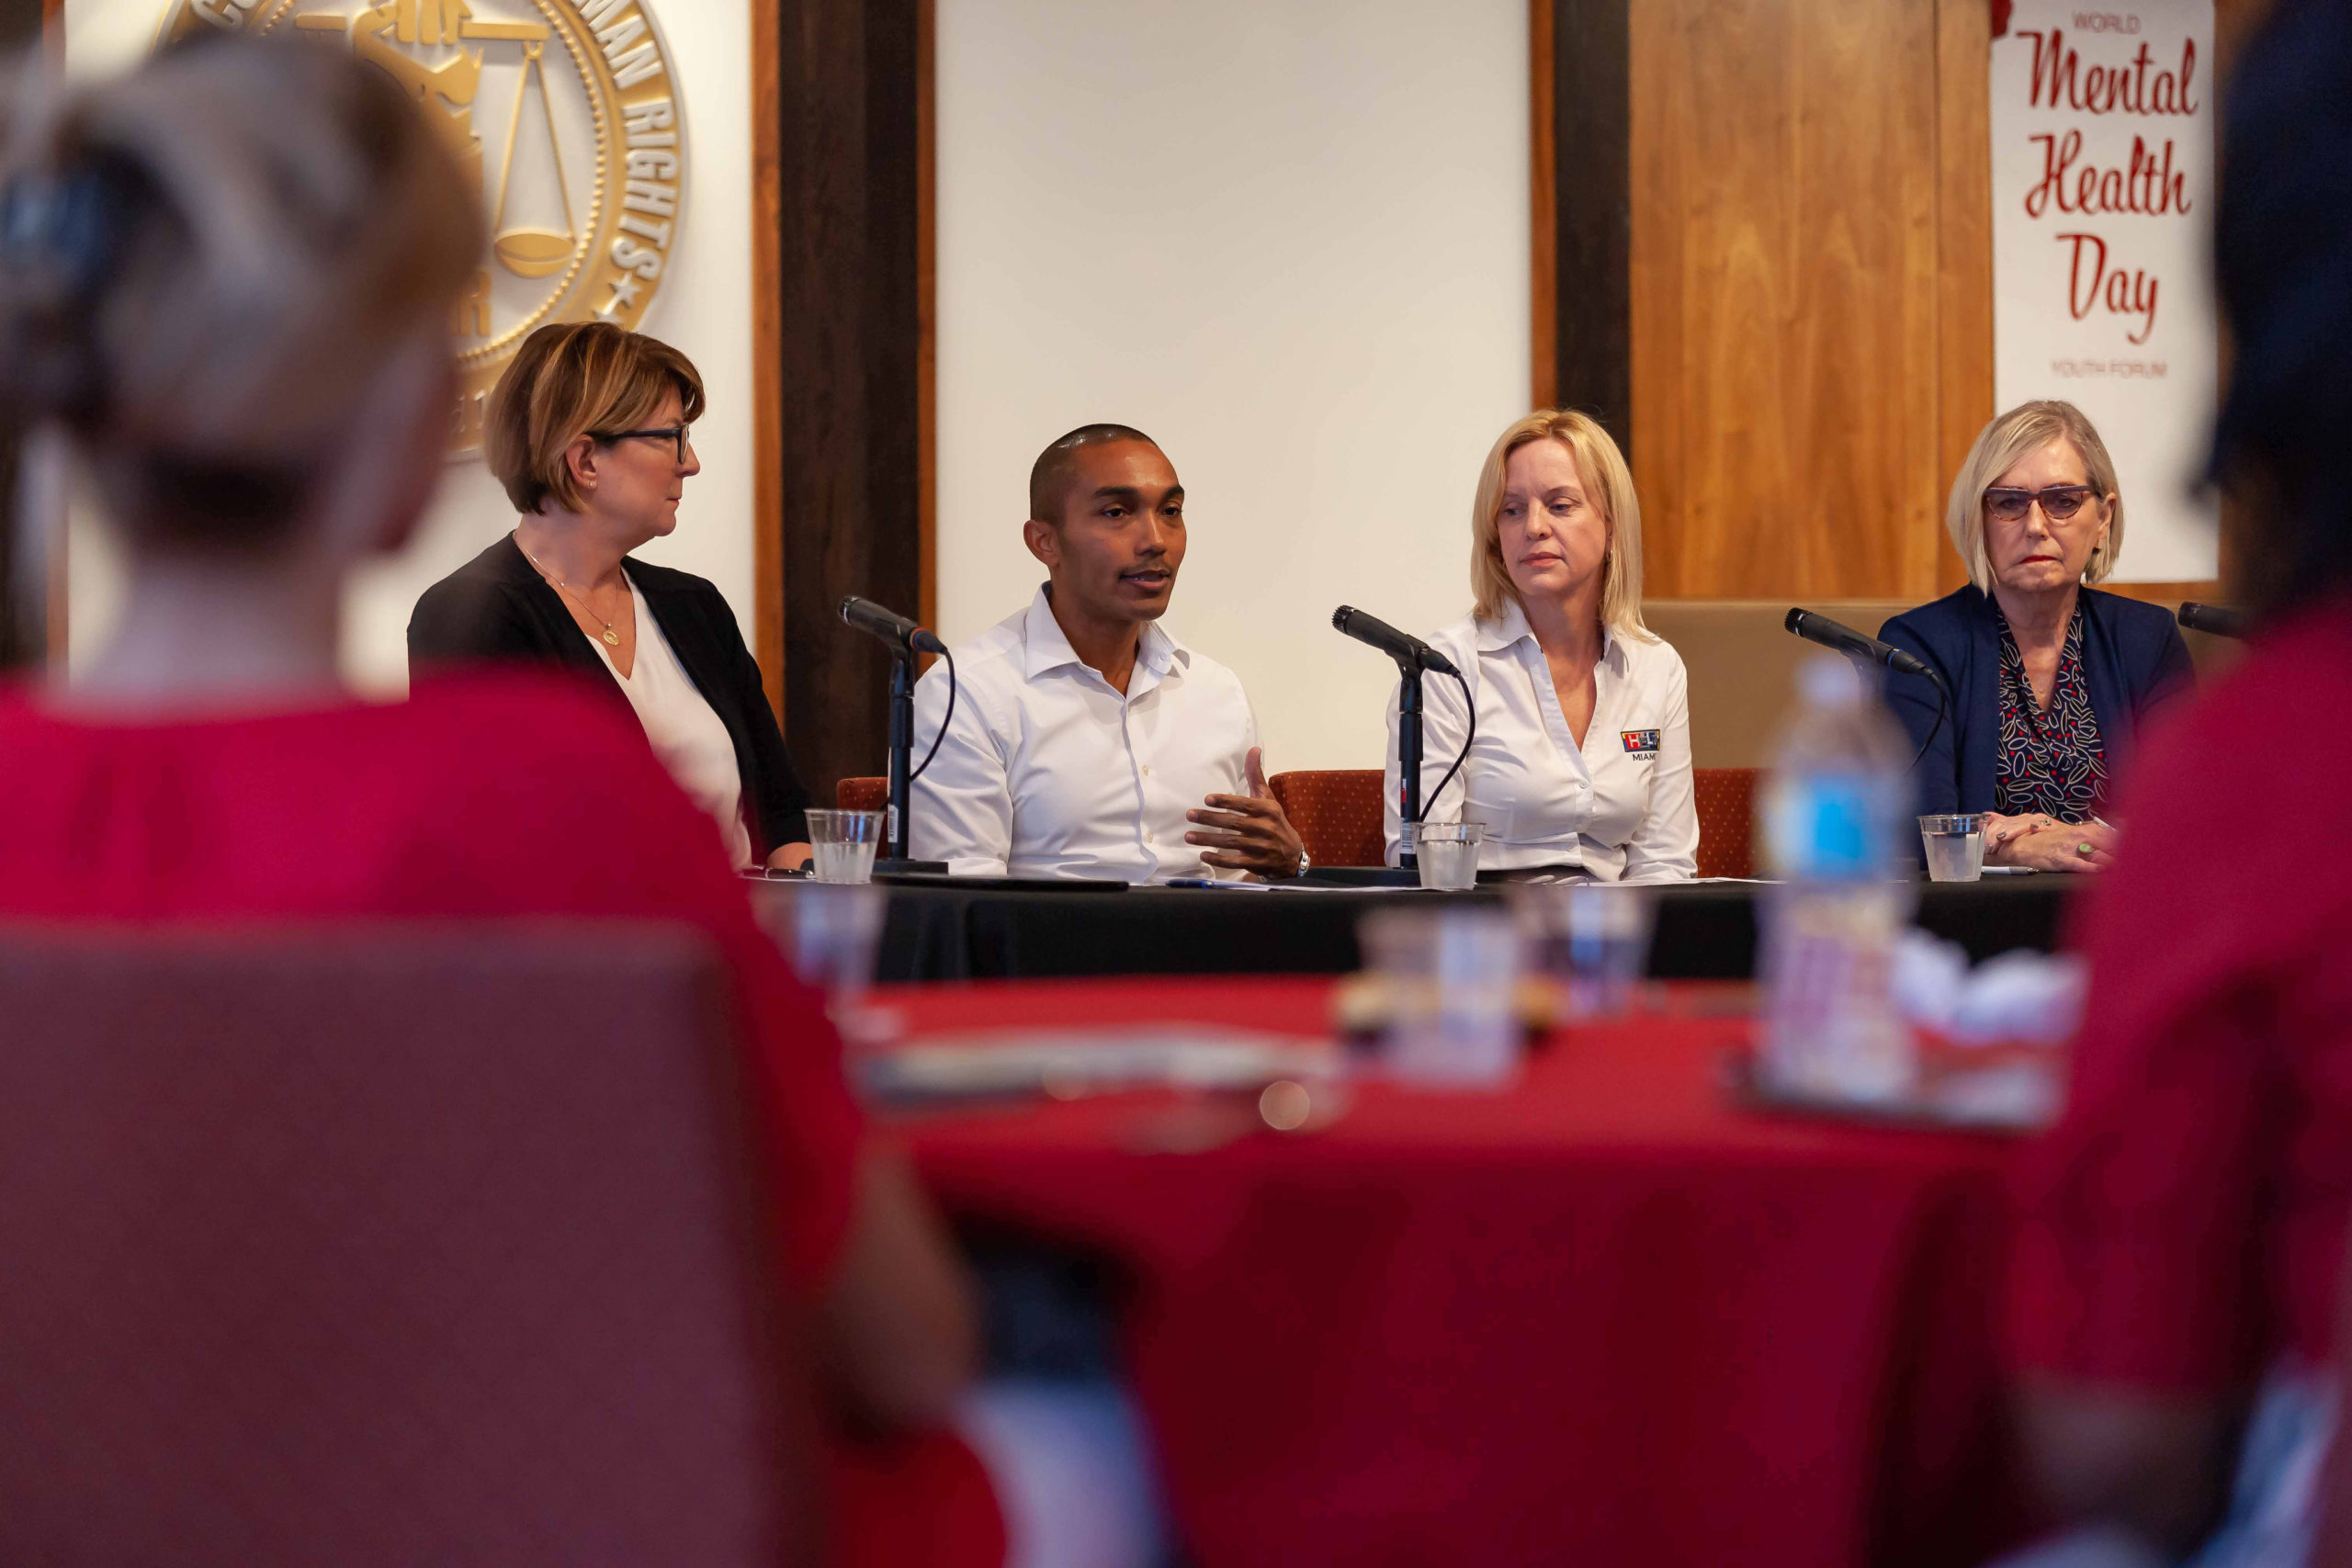 Experts presented solutions to the challenges faced when dealing with youth mental health to an audience of concerned parents, educators, clergy and mental health practitioners.